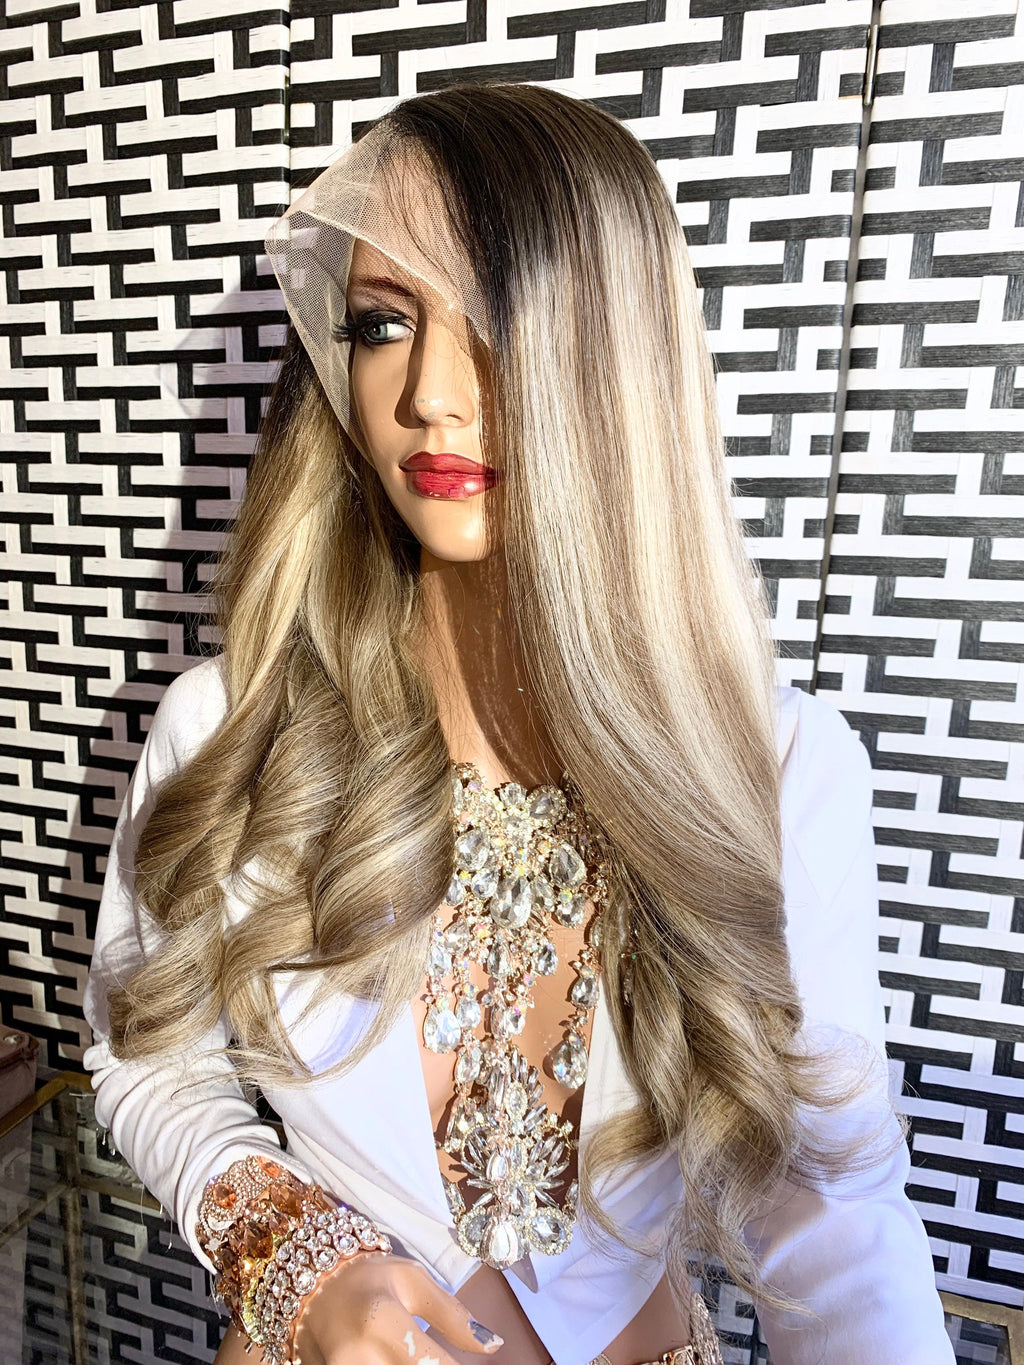 HUMAN HAIR Full lace Wig, Balayage blonde with root, Loose Curl hair, Virgin hair, 22 inches long